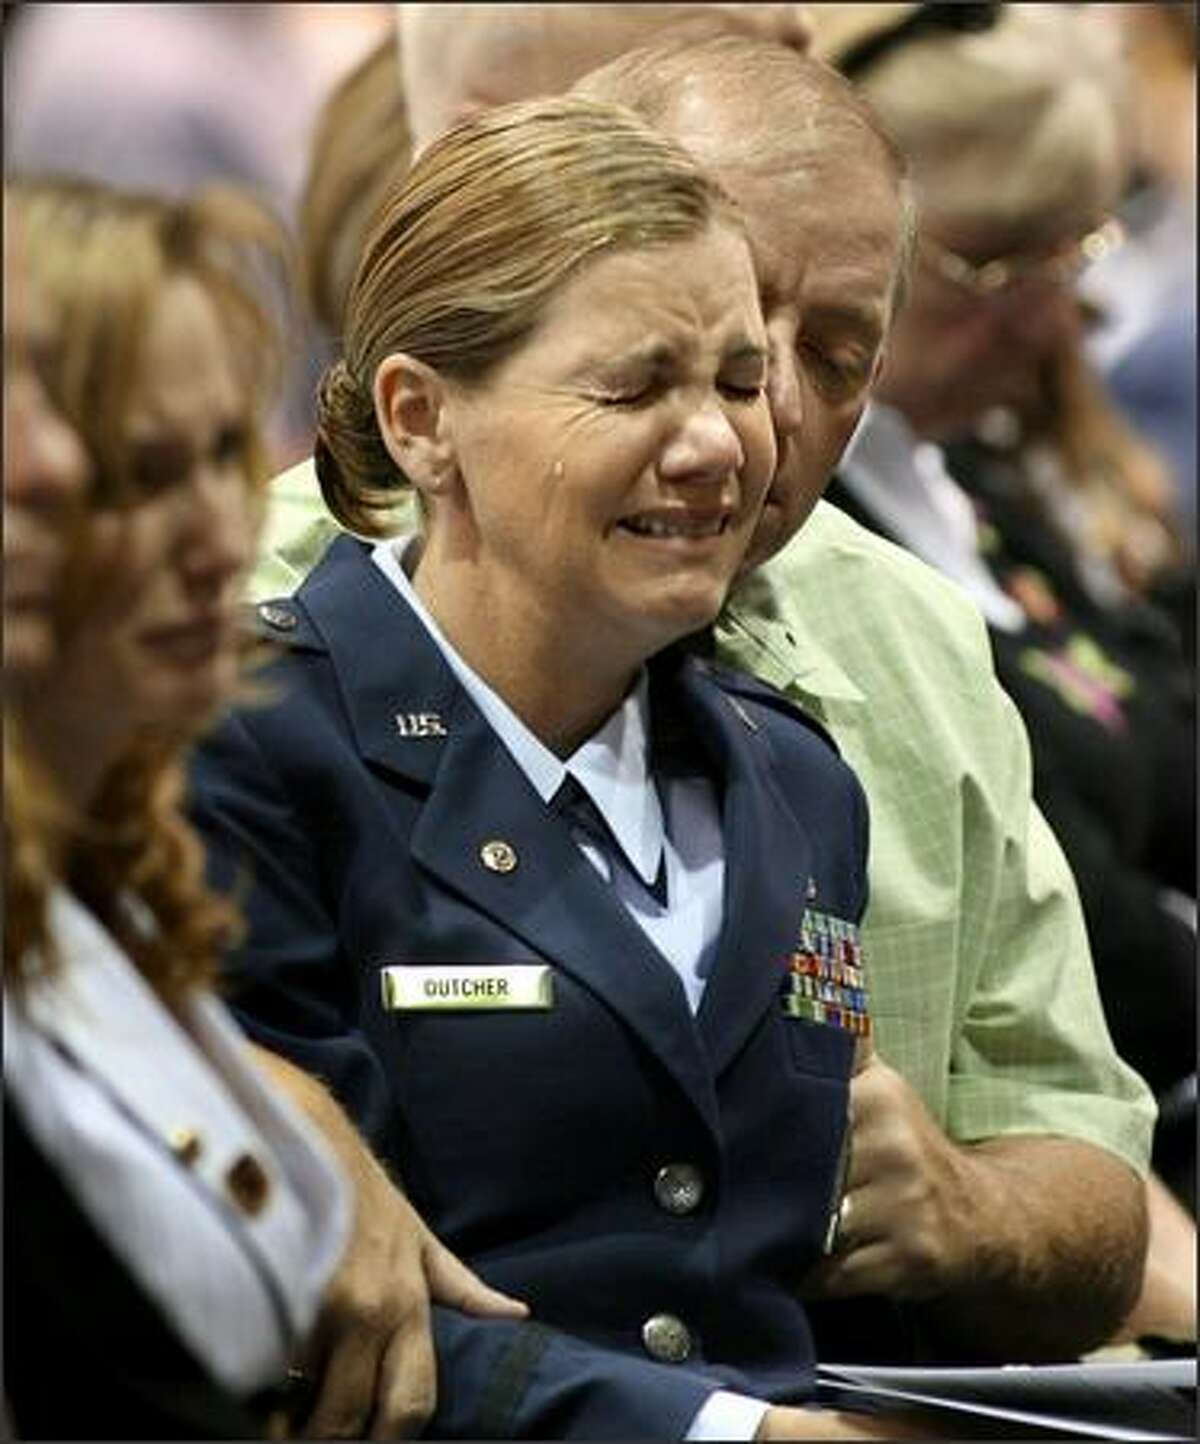 Air Force Reserve Capt. Teresa Dutcher is comforted by her husband, Jeffrey Dutcher, at a memorial for her son, Cpl. Michael Avery Pursel, and five other soldiers killed in Iraq.